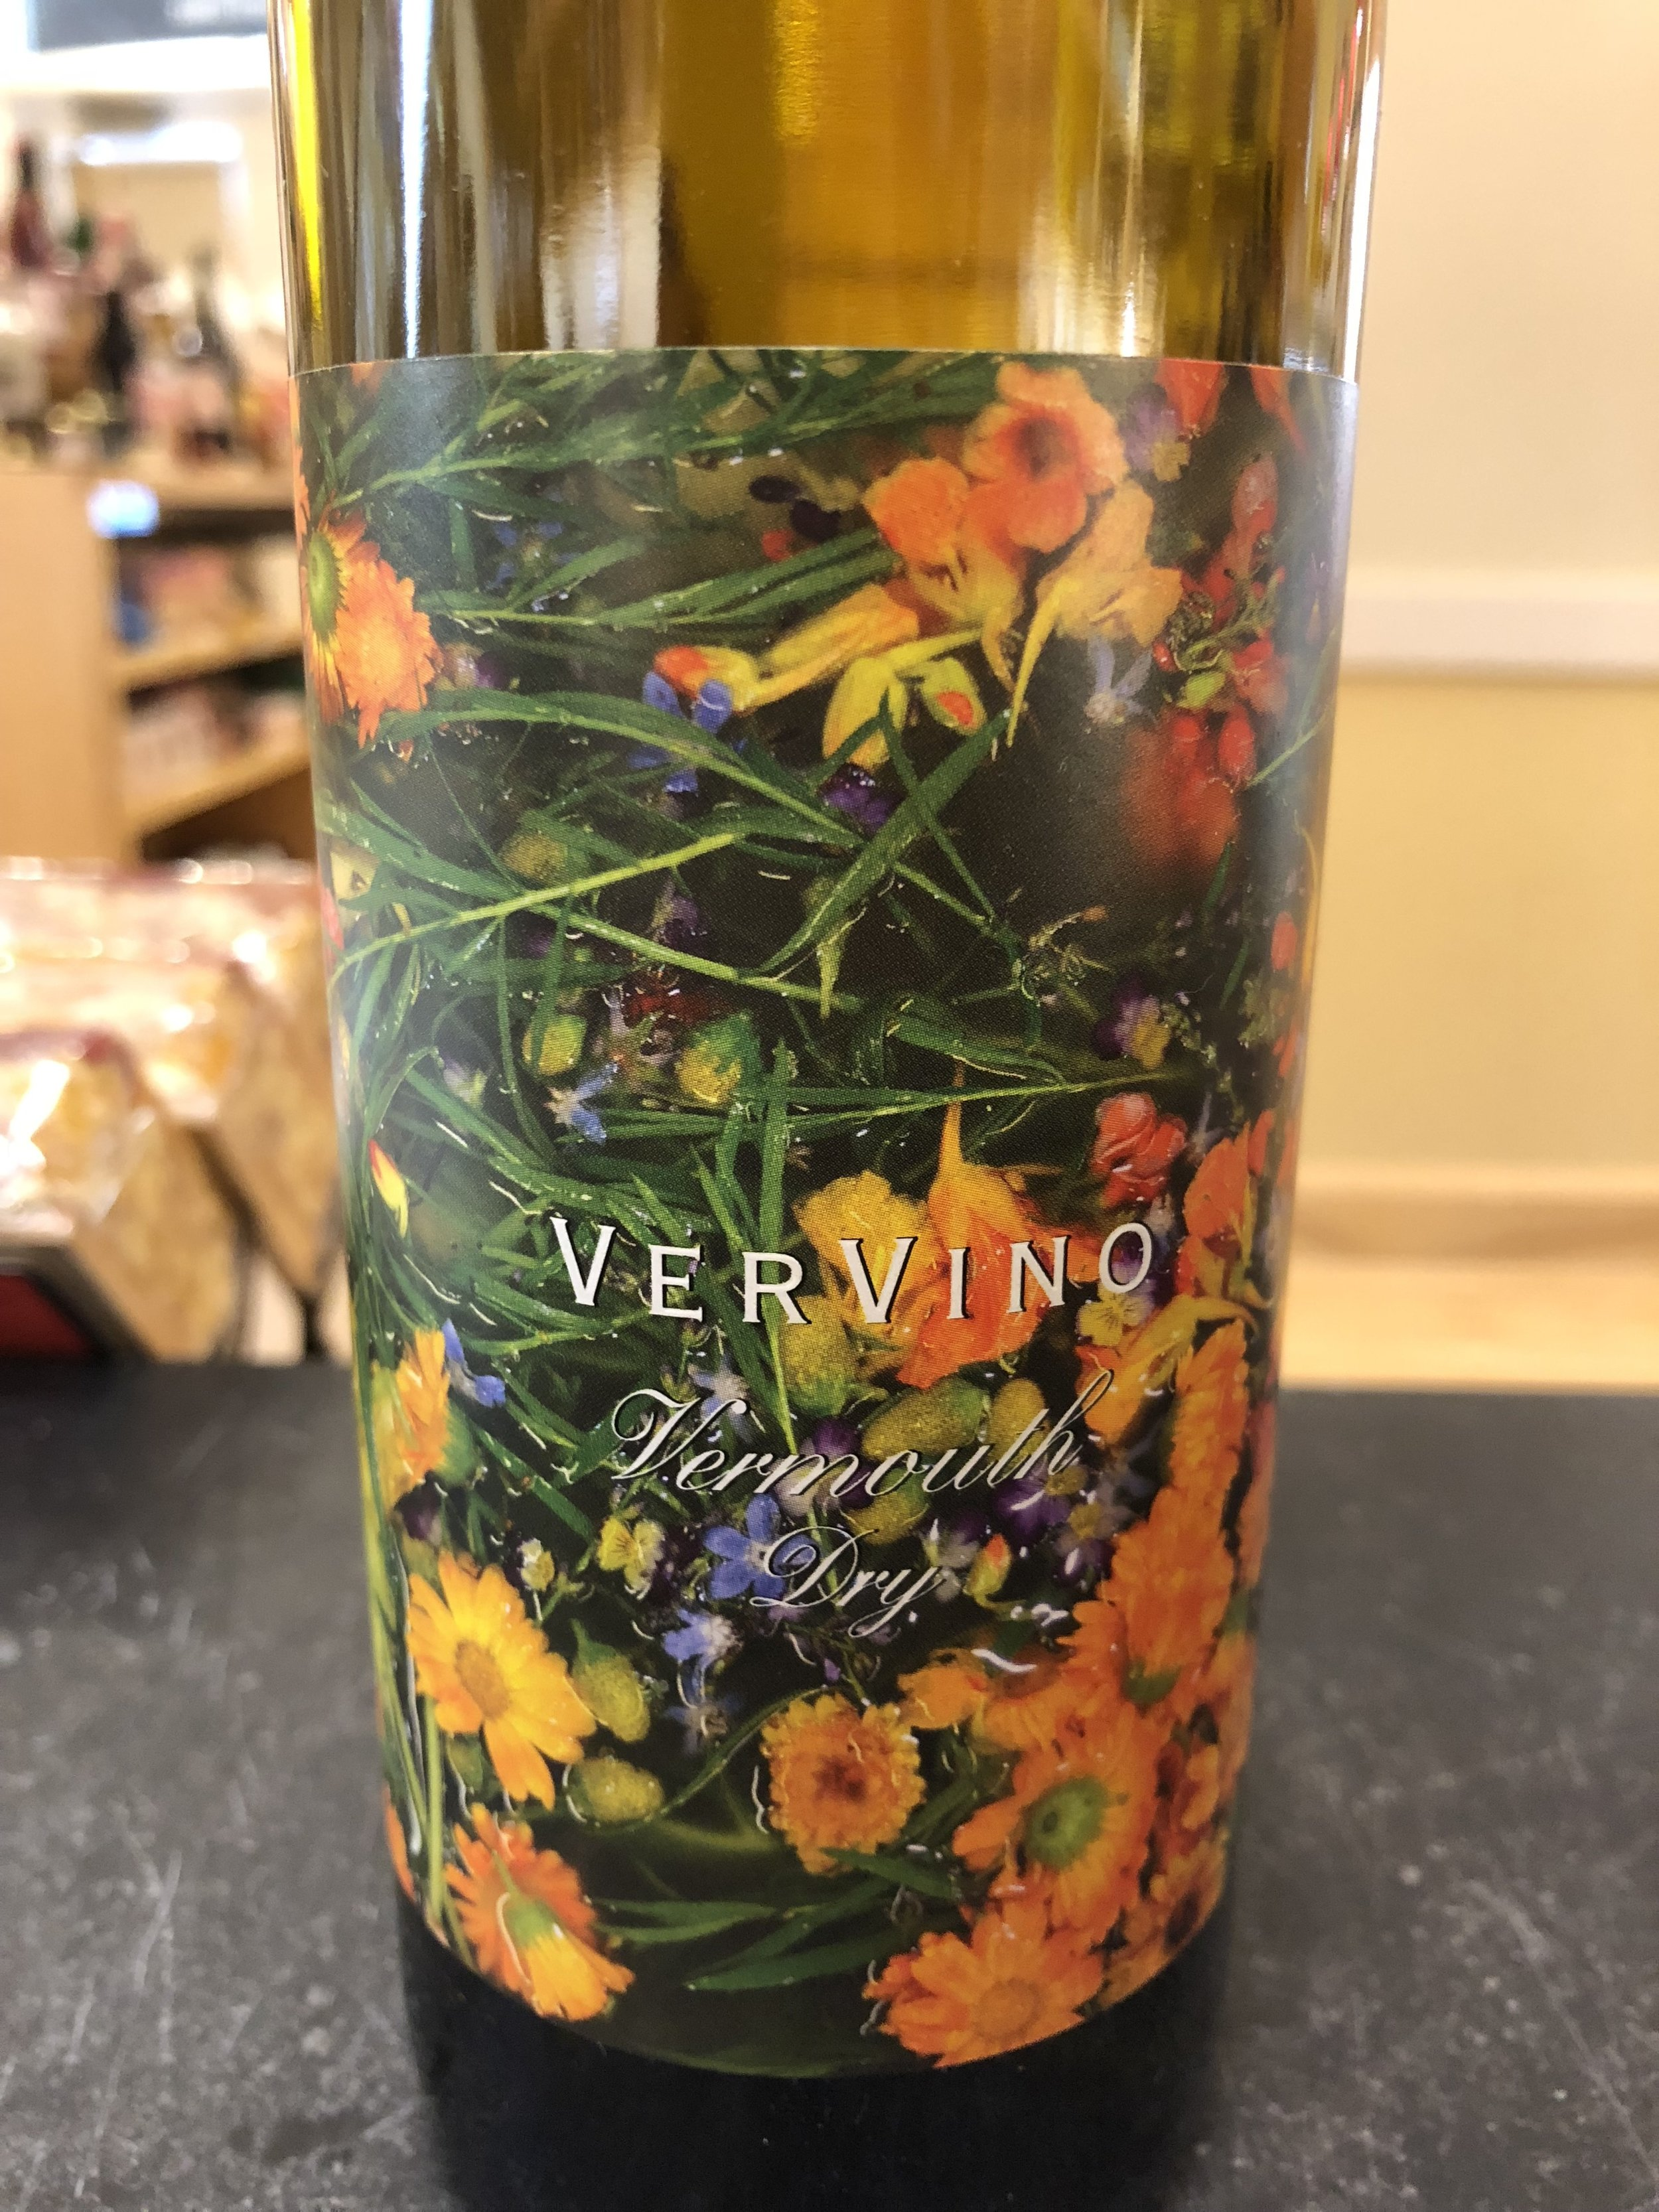 ALL the herbs. VV2's label is an actual aerial photo of the vermouth vat.